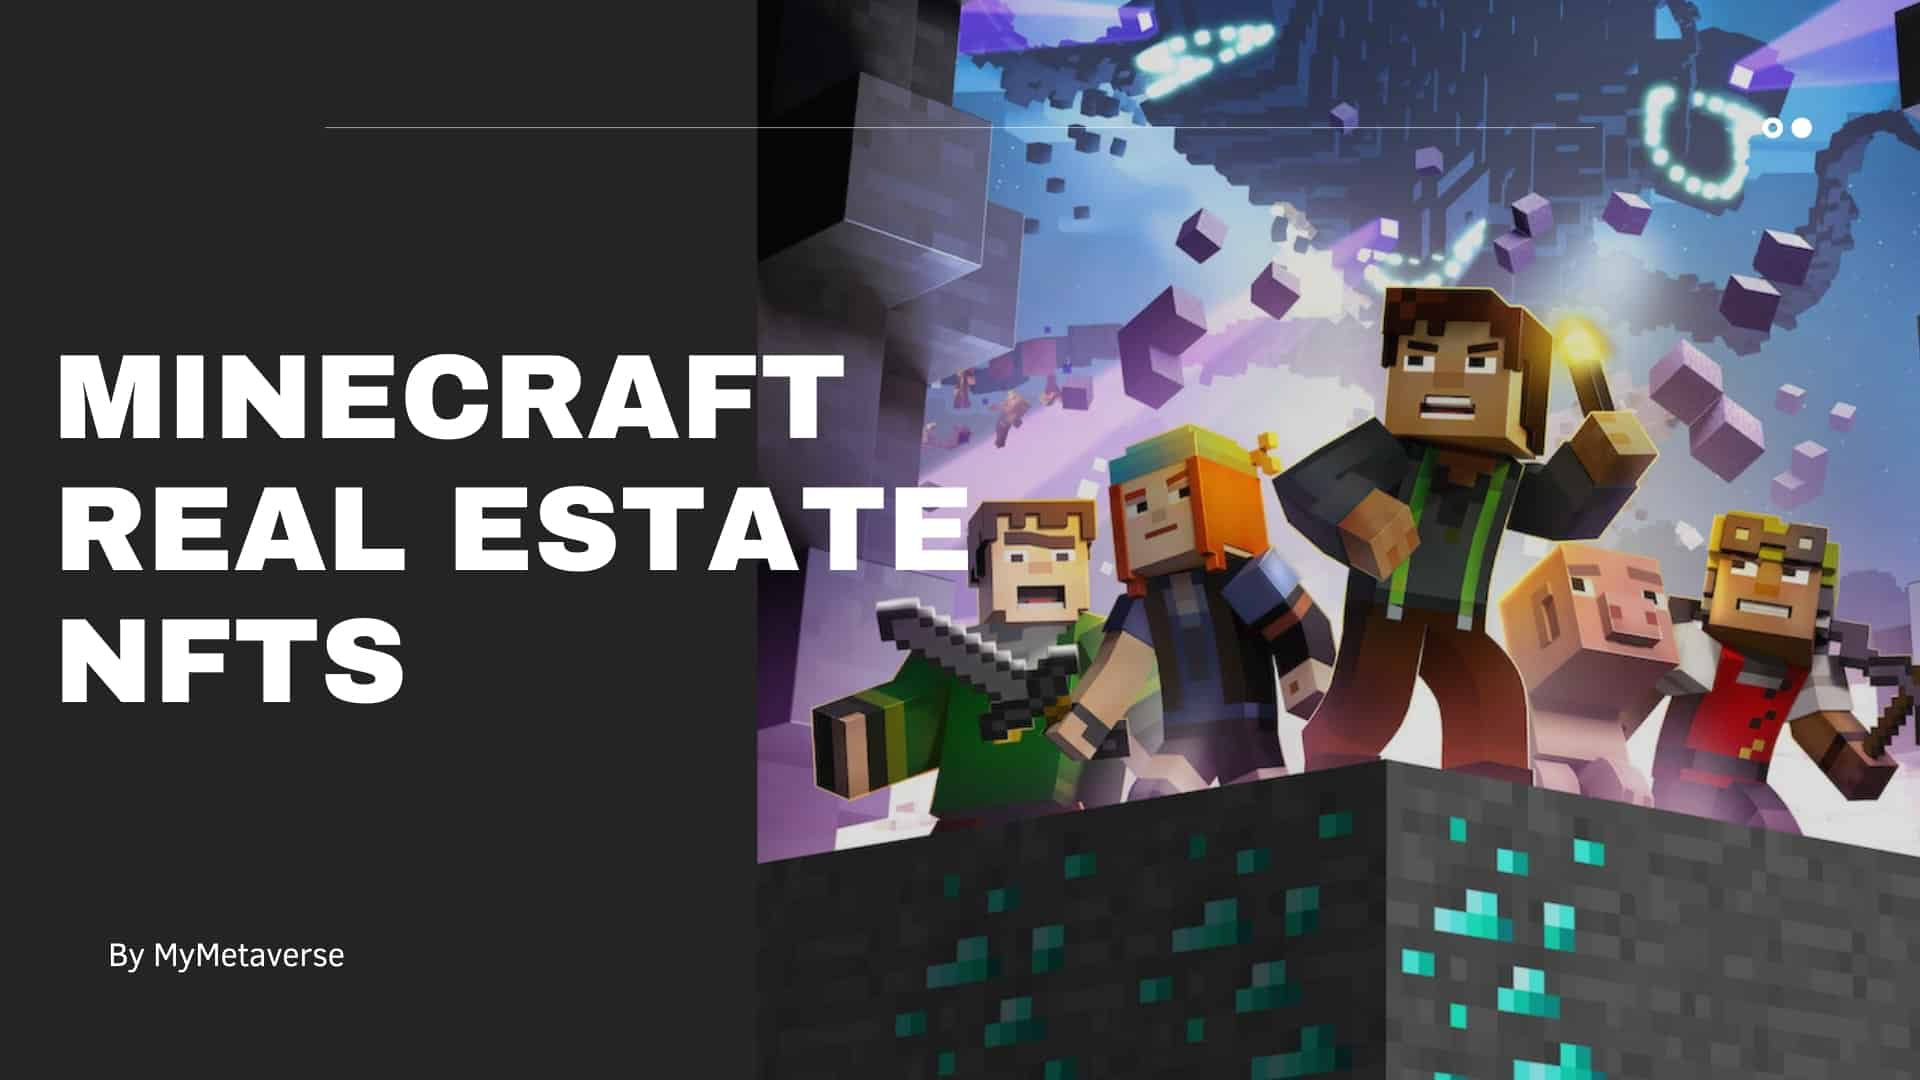 MyMetaverse Launches Real Estate NFTs For Minecraft Players